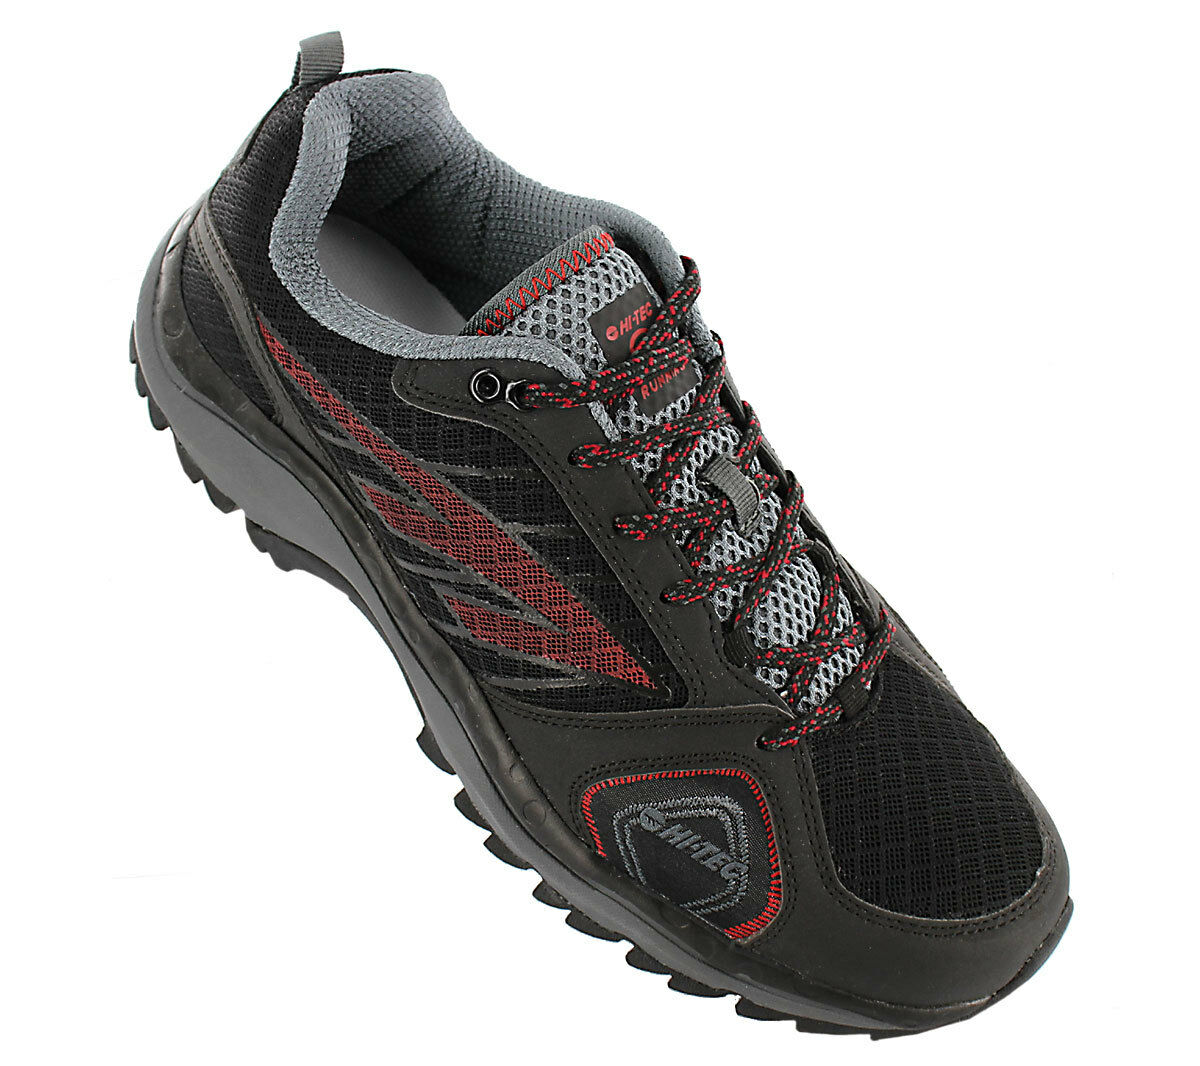 NEW Hi-Tec Haraka Trail S A005460-021 Men''s shoes Trainers Sneakers SALE